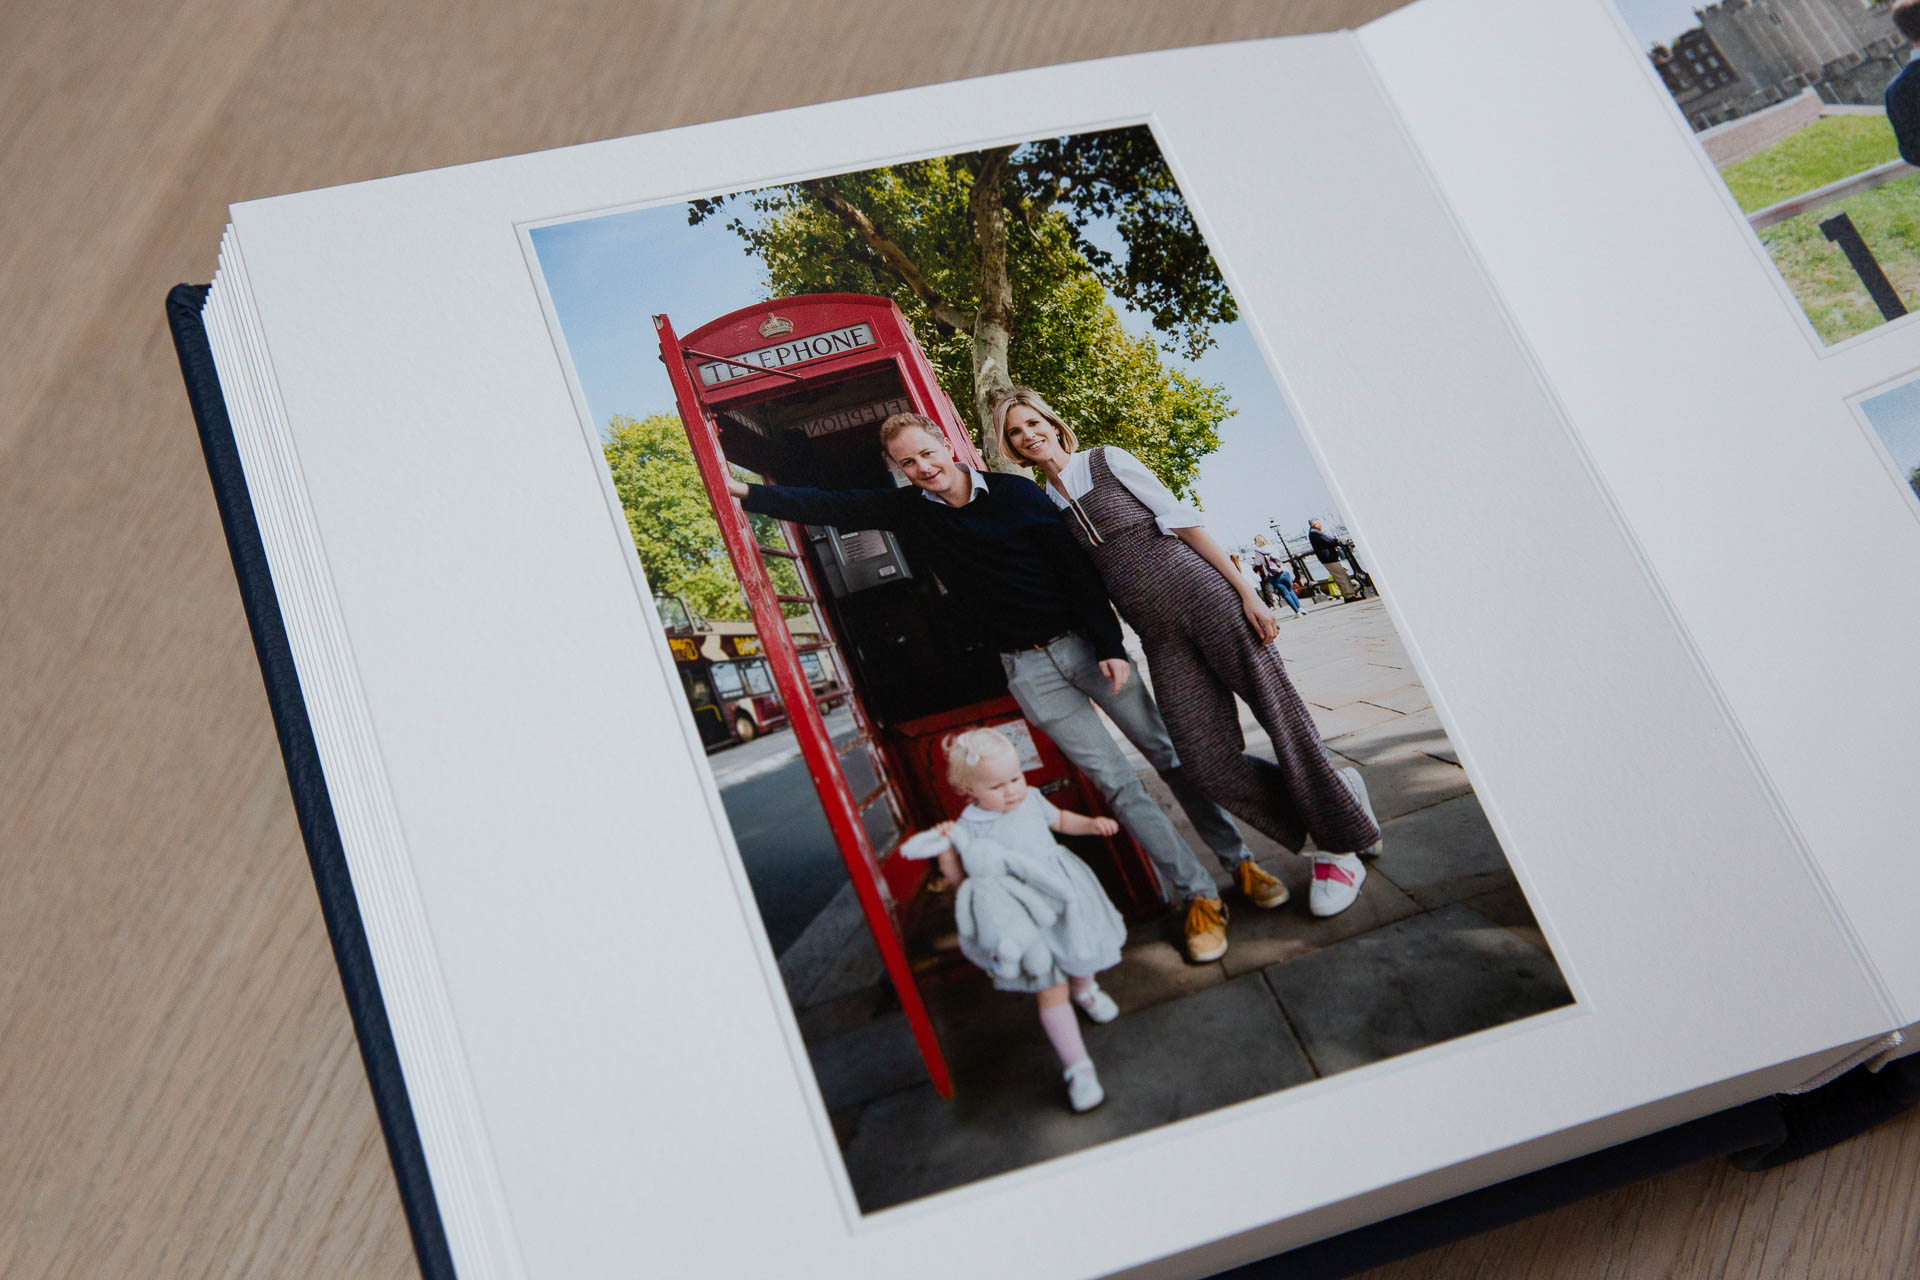 handmade photo album picture of child and phone booth